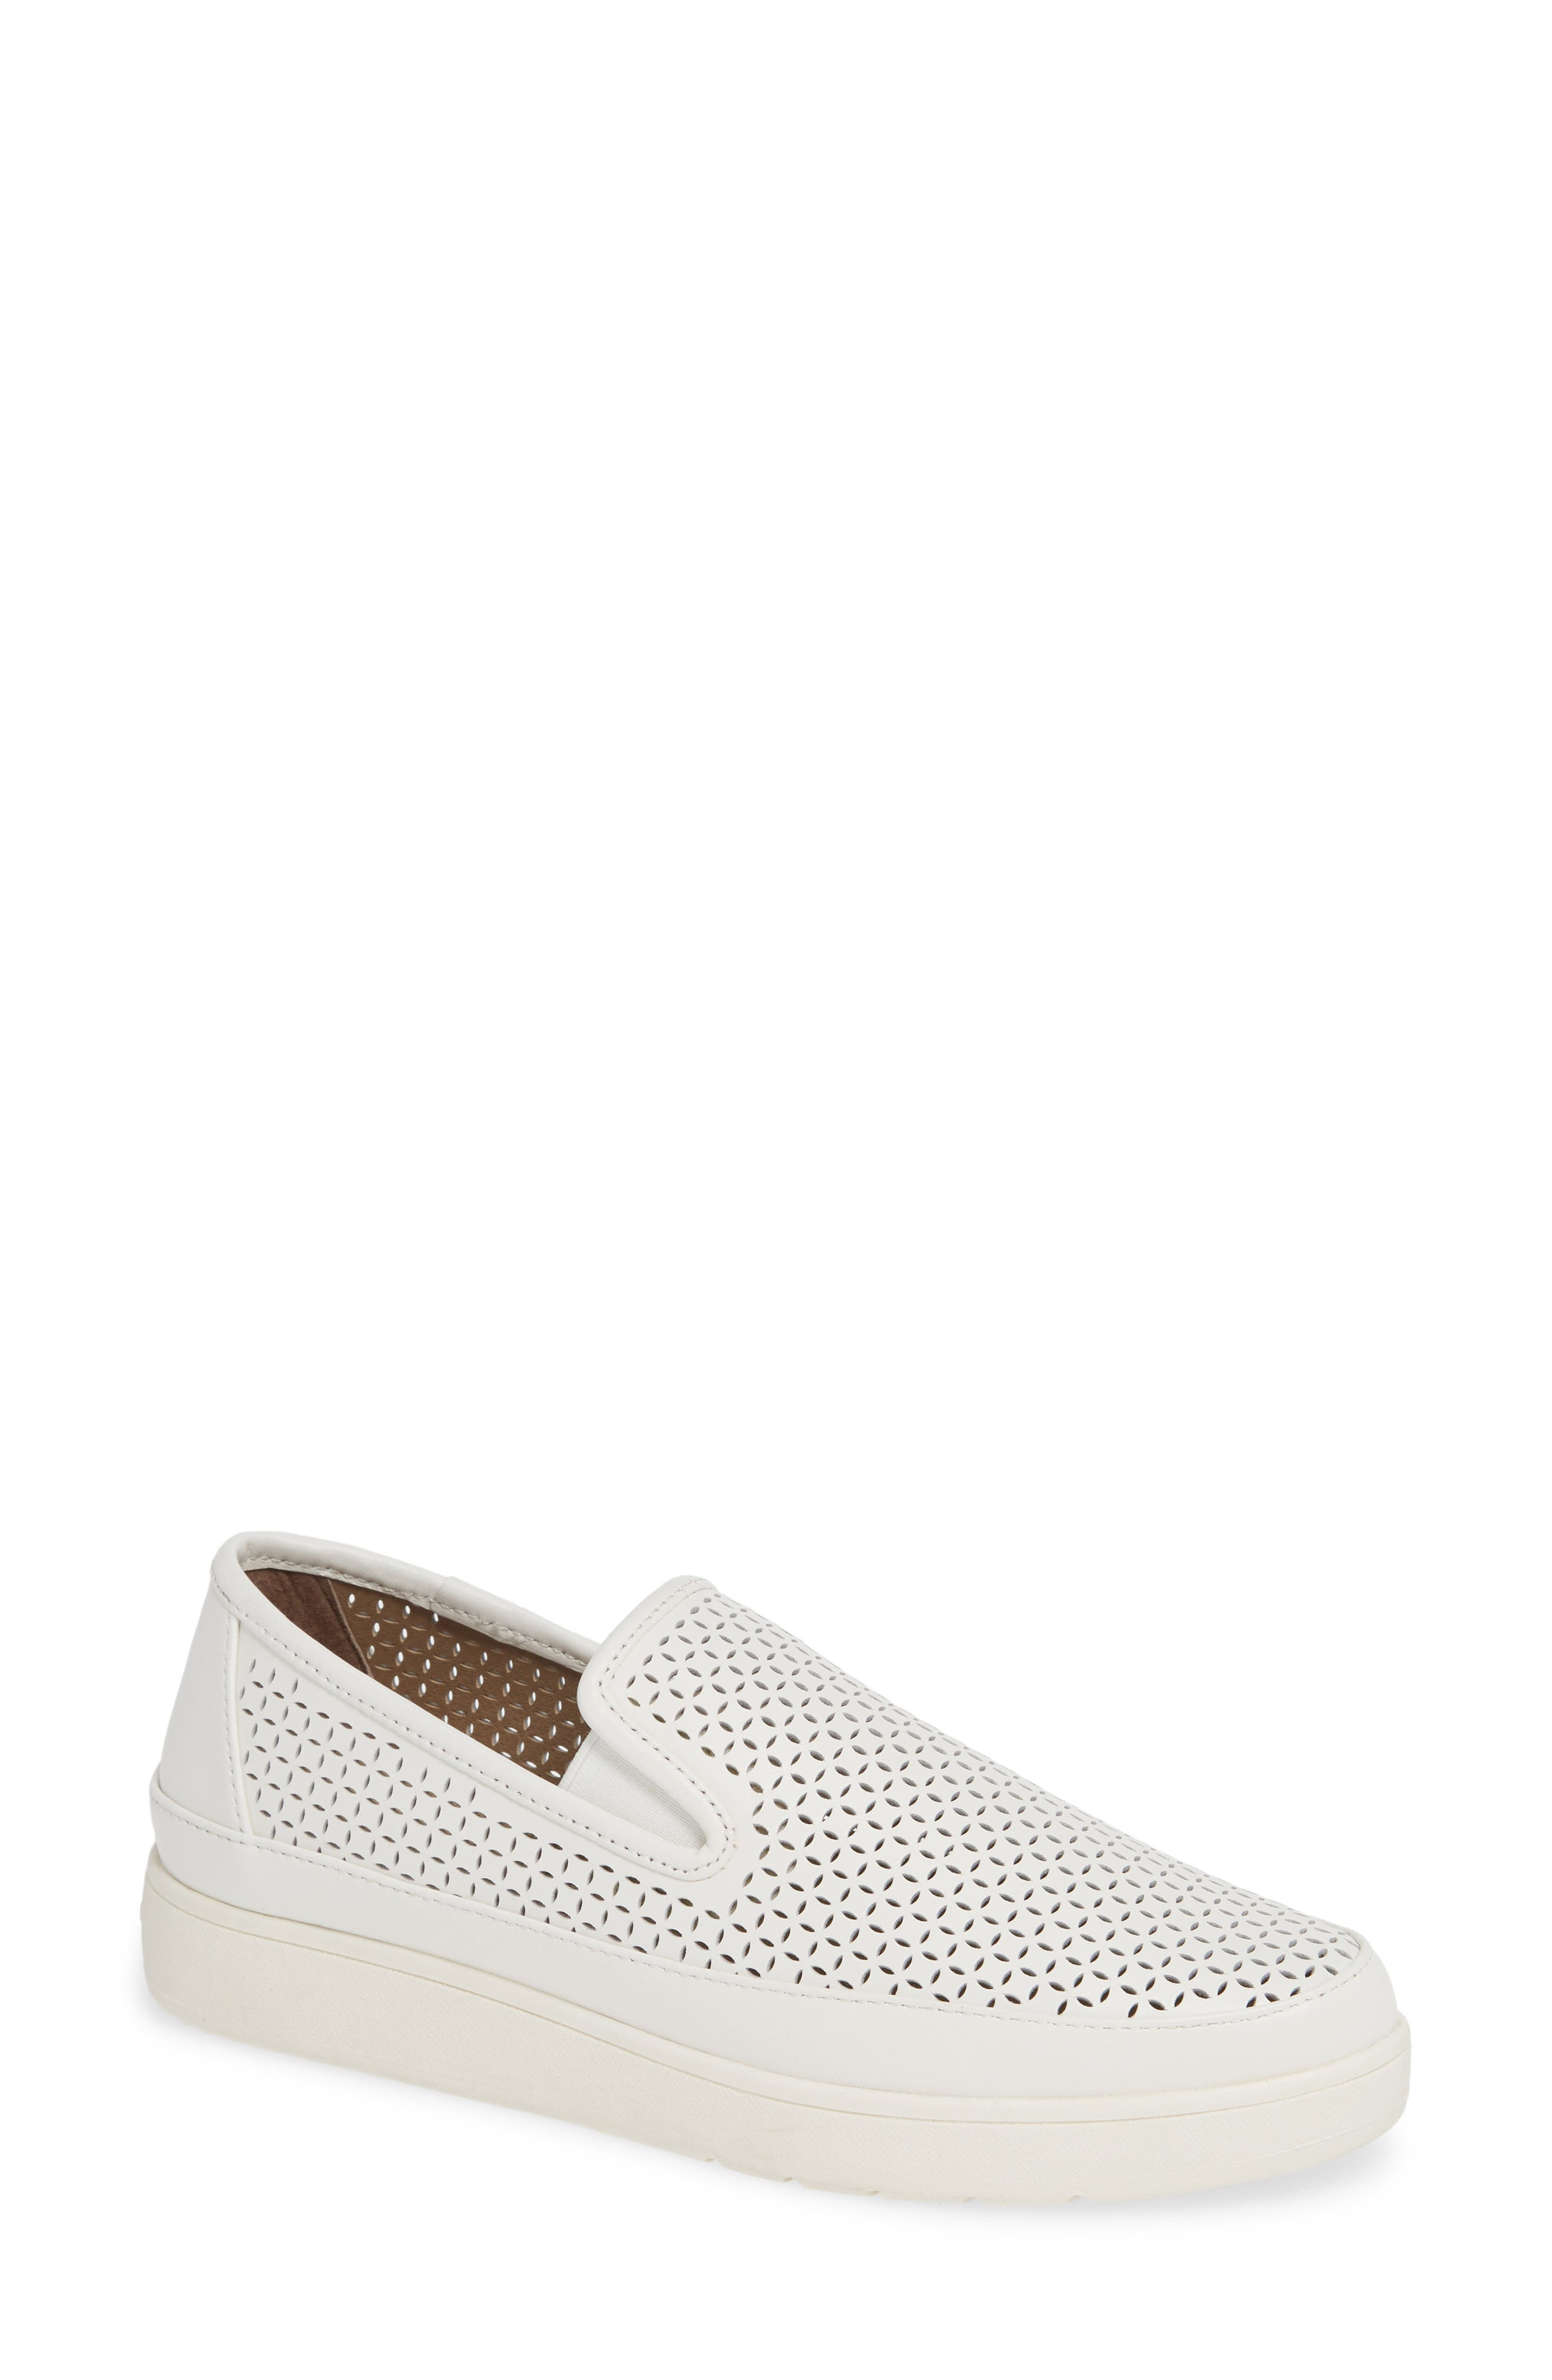 Maddox Perforated Slip-On Sneaker, Main, color, 100